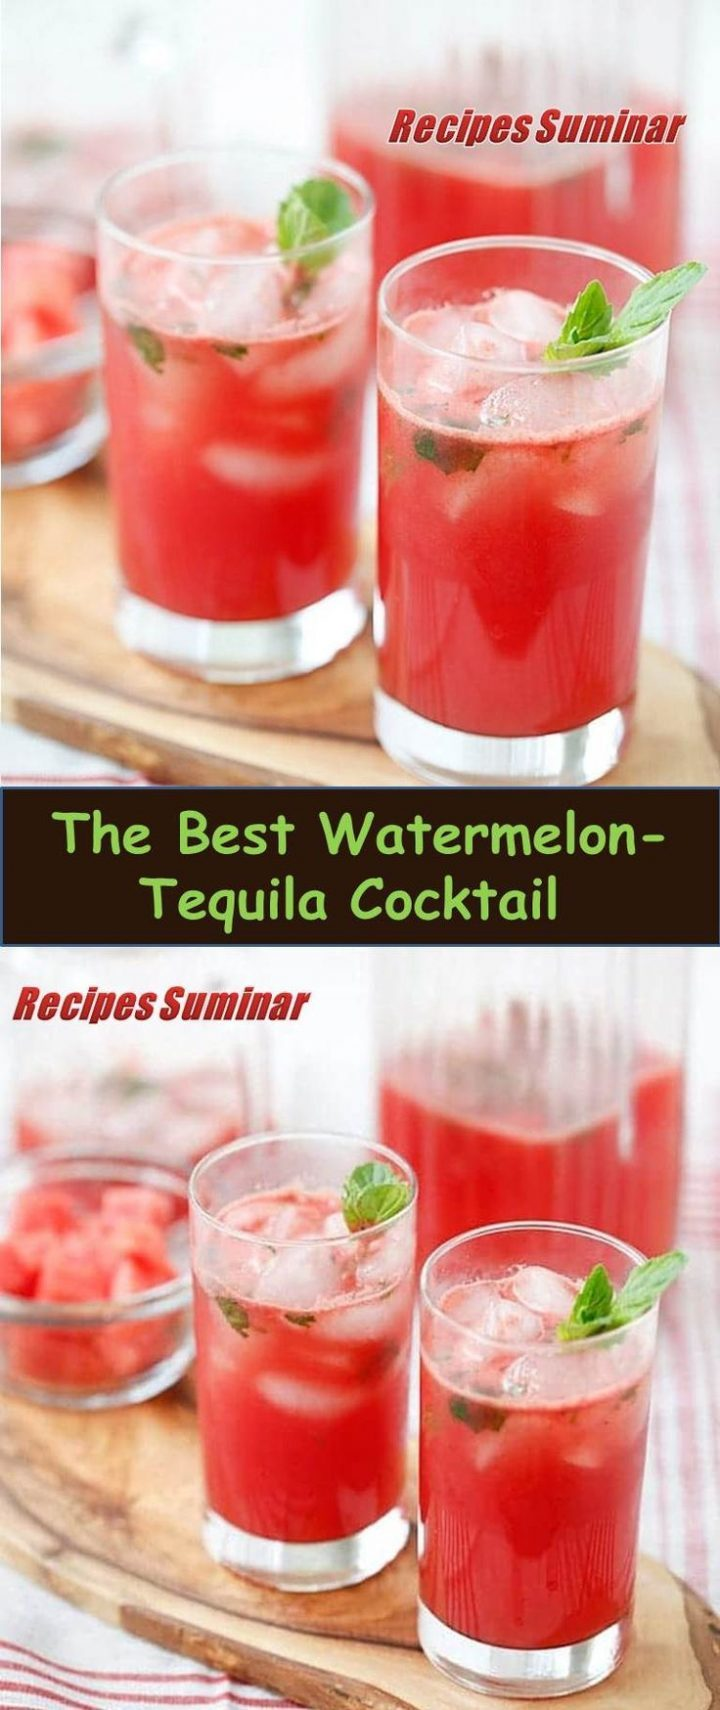 ★★★★★ 877 Comments Recipe Suminar ==> Watermelon and tequila cocktail Recipe # Watermelon and tequila # Cocktail # Recipe Watermelon and tequila cocktail: refreshing and surprising cocktail recipe with fresh watermelon, tequila, lime juice and mint, It takes 15 minutes.